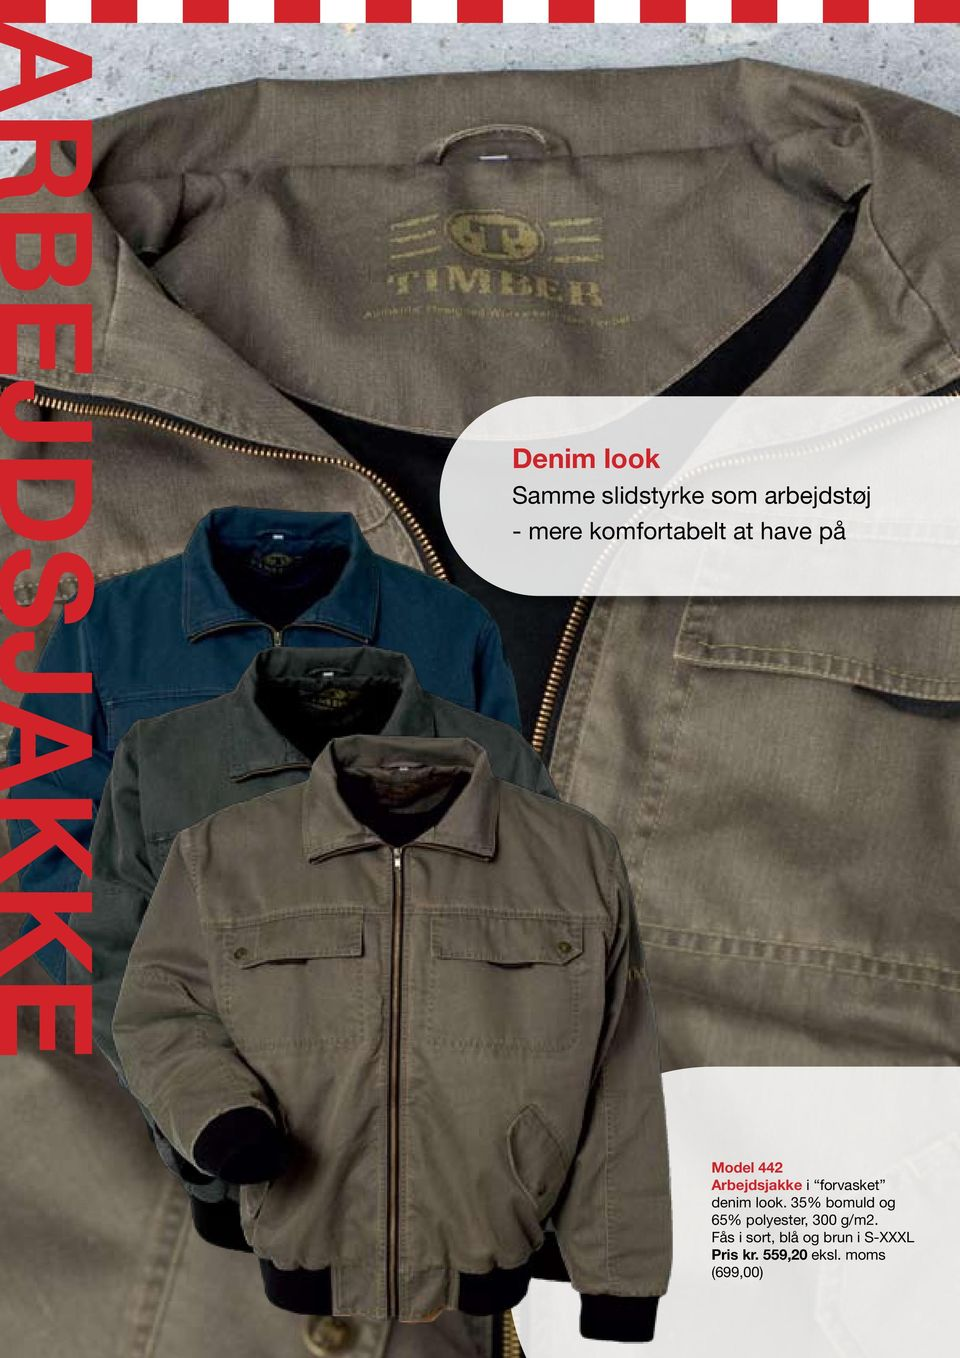 forvasket denim look.